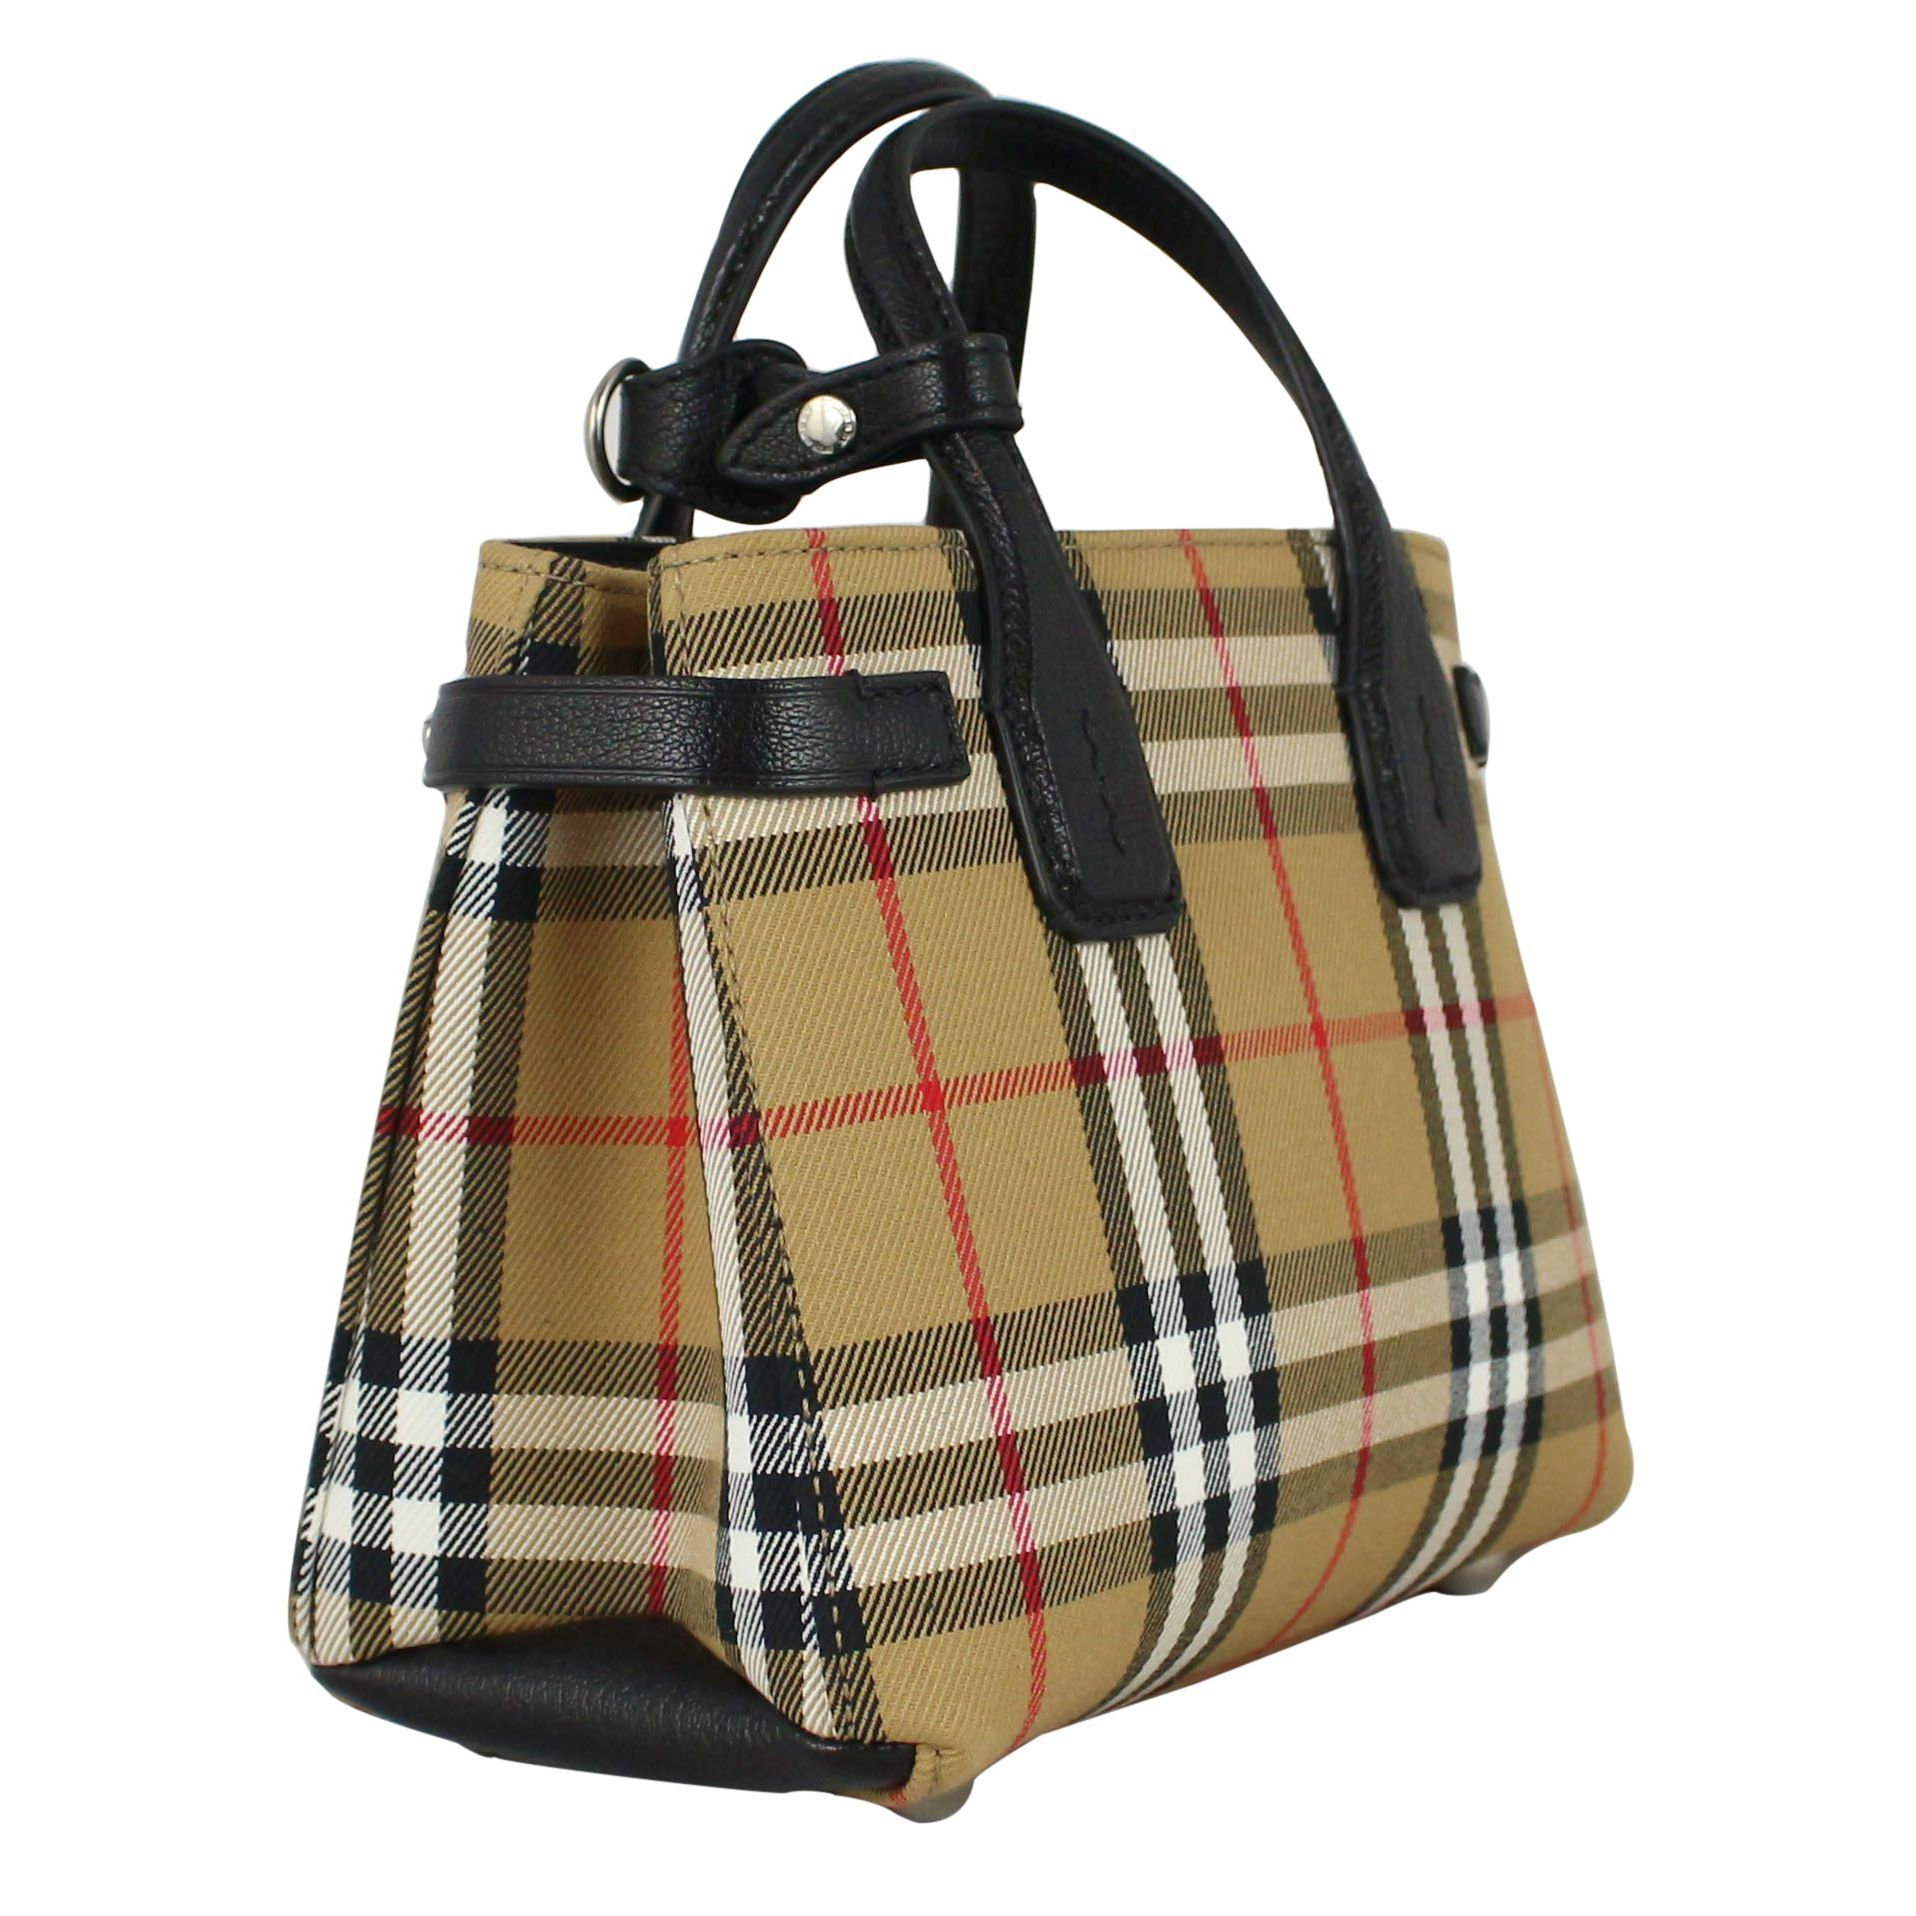 7ba8d2d419 Baby Banner bag in canvas Check / black, Burberry 4079964 ...